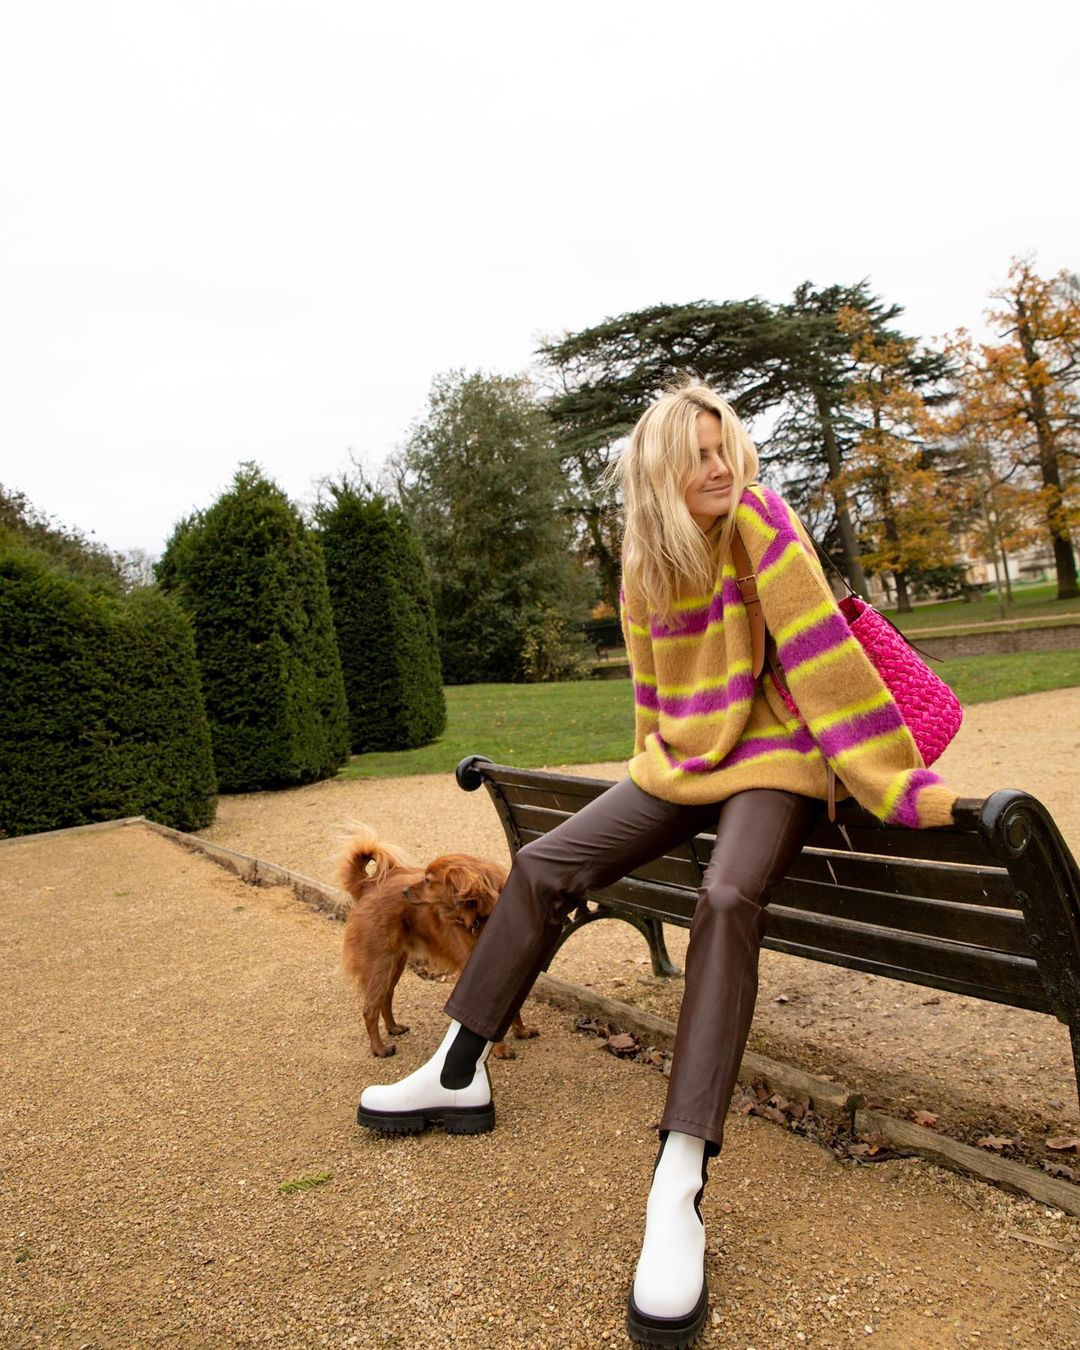 lucy-williams-andersson-bell-striped-knitted-sweater-instgaram